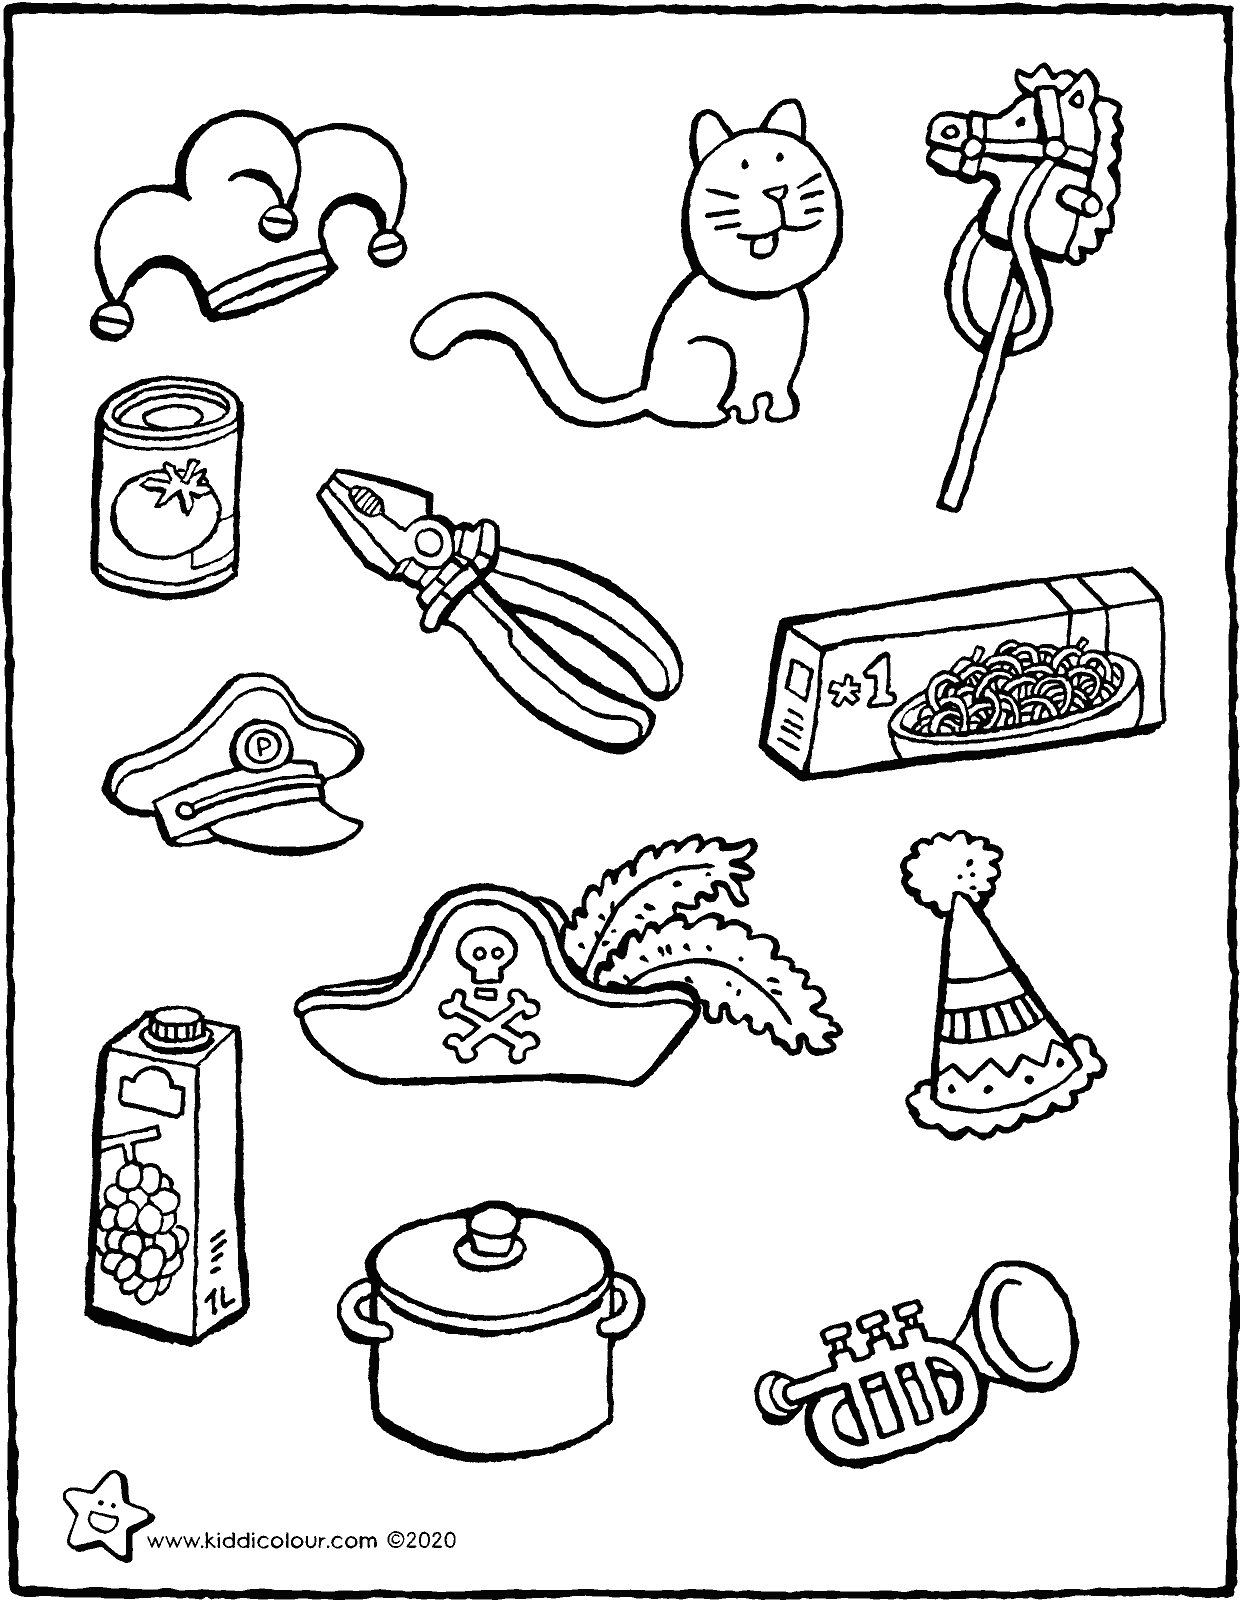 colour in the carnival objects colouring page drawing picture 01V